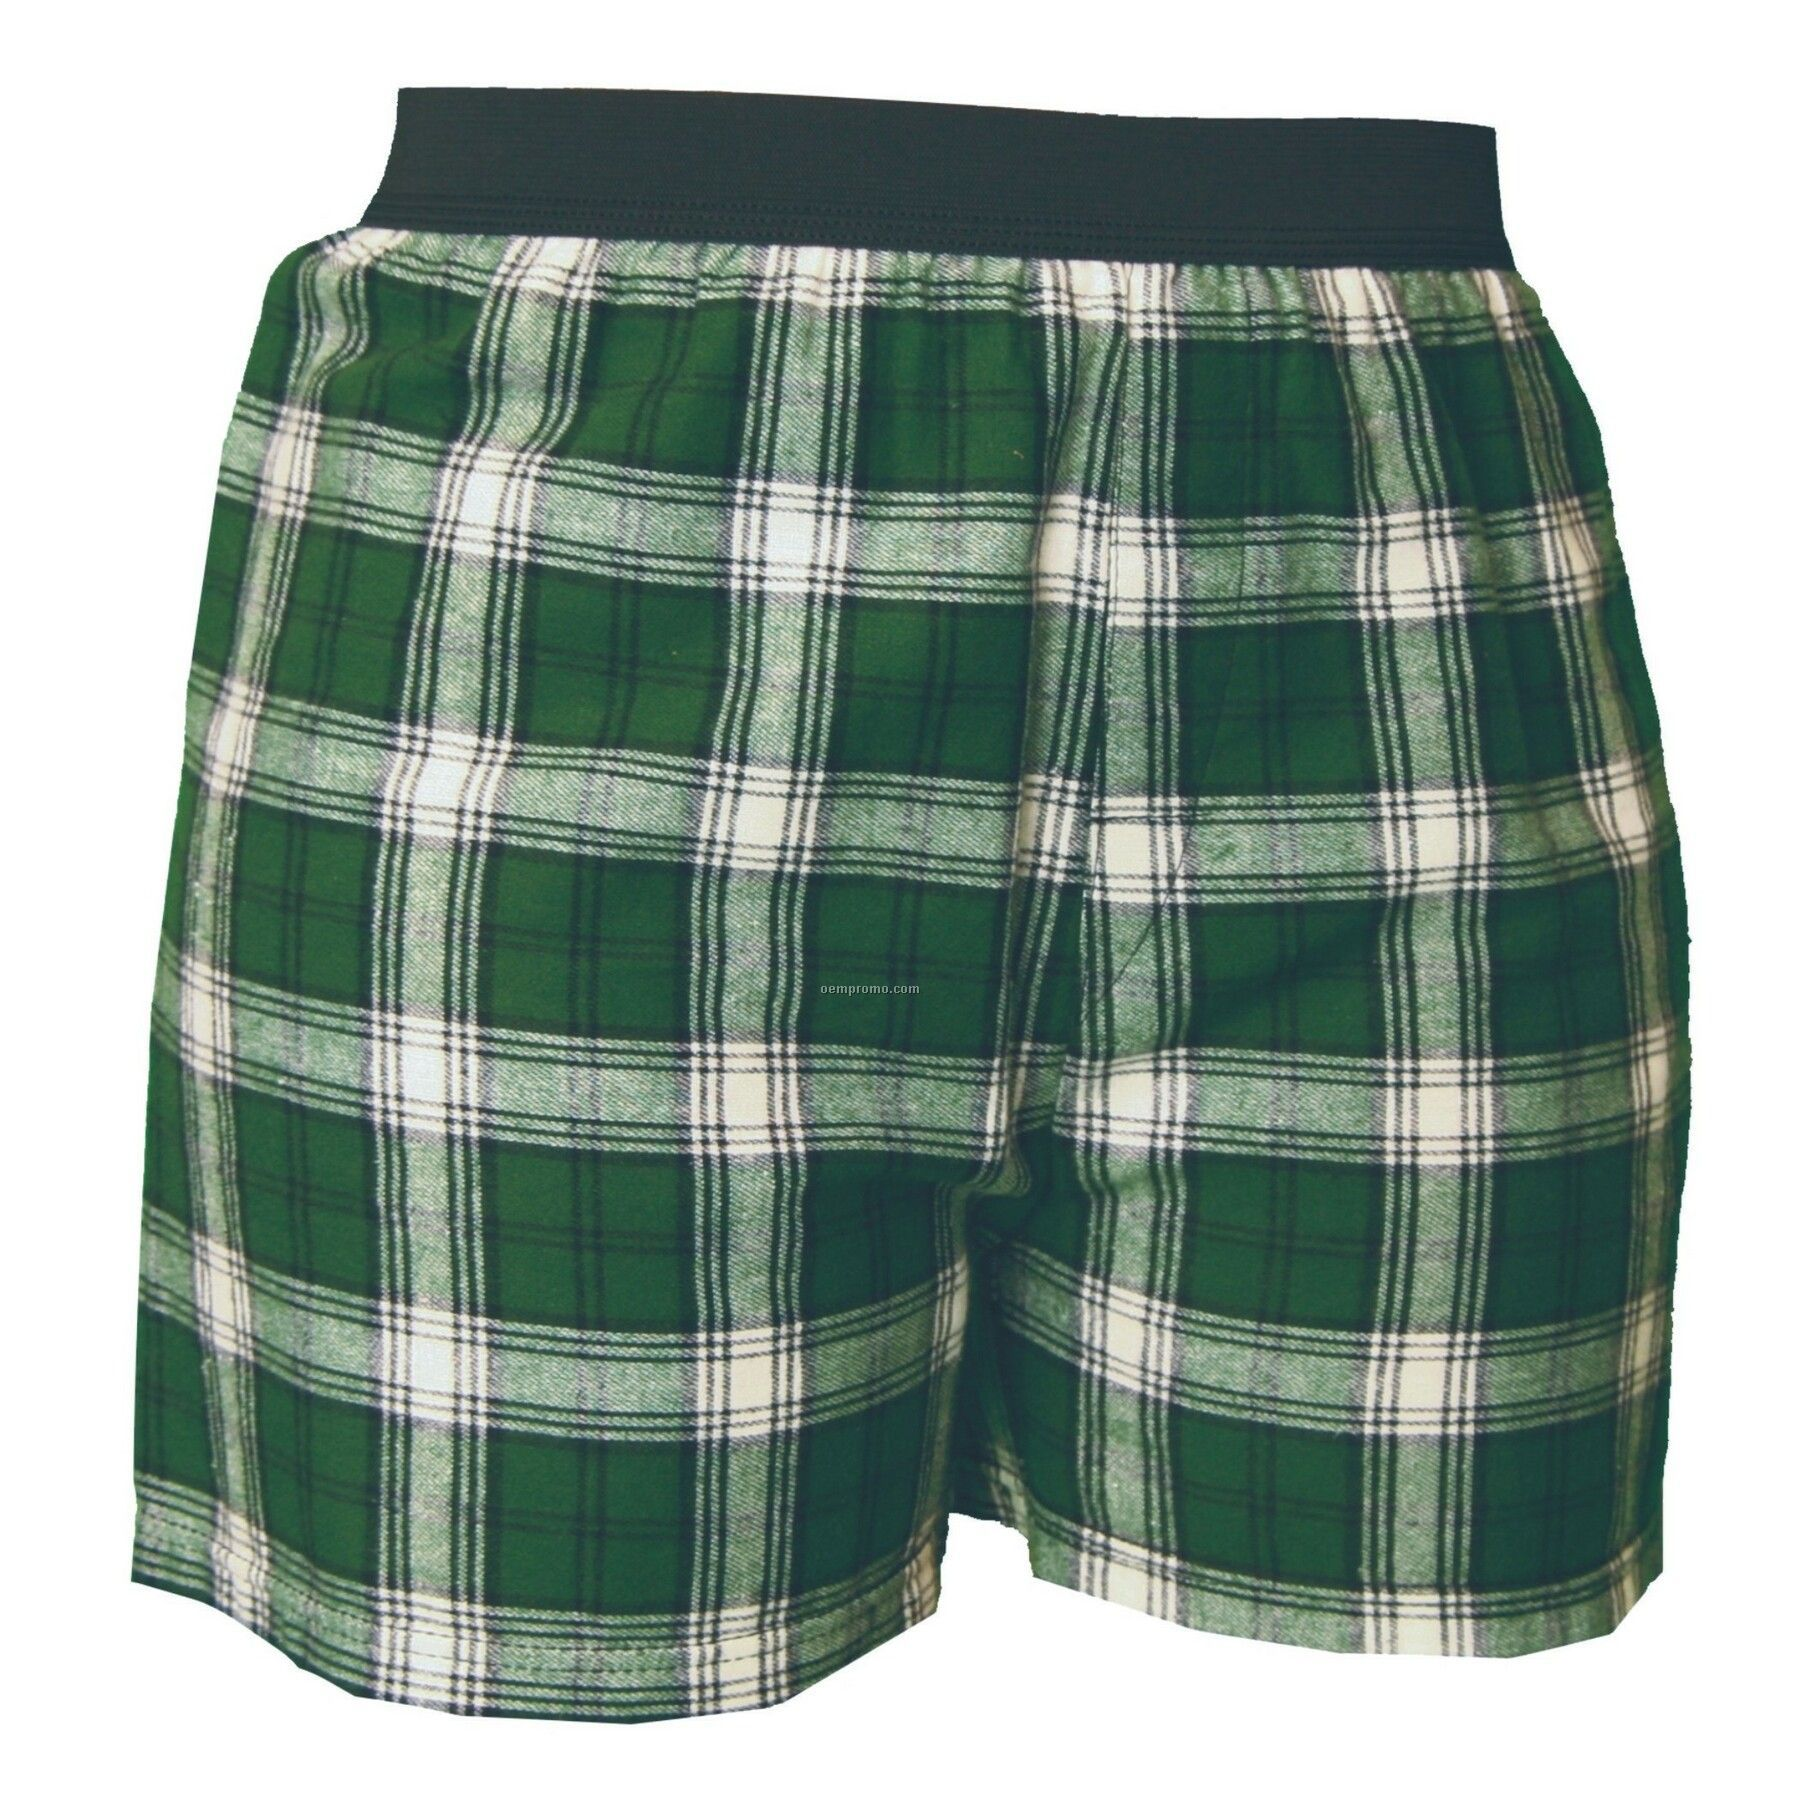 Youth Green/White Plaid Classic Boxer Short